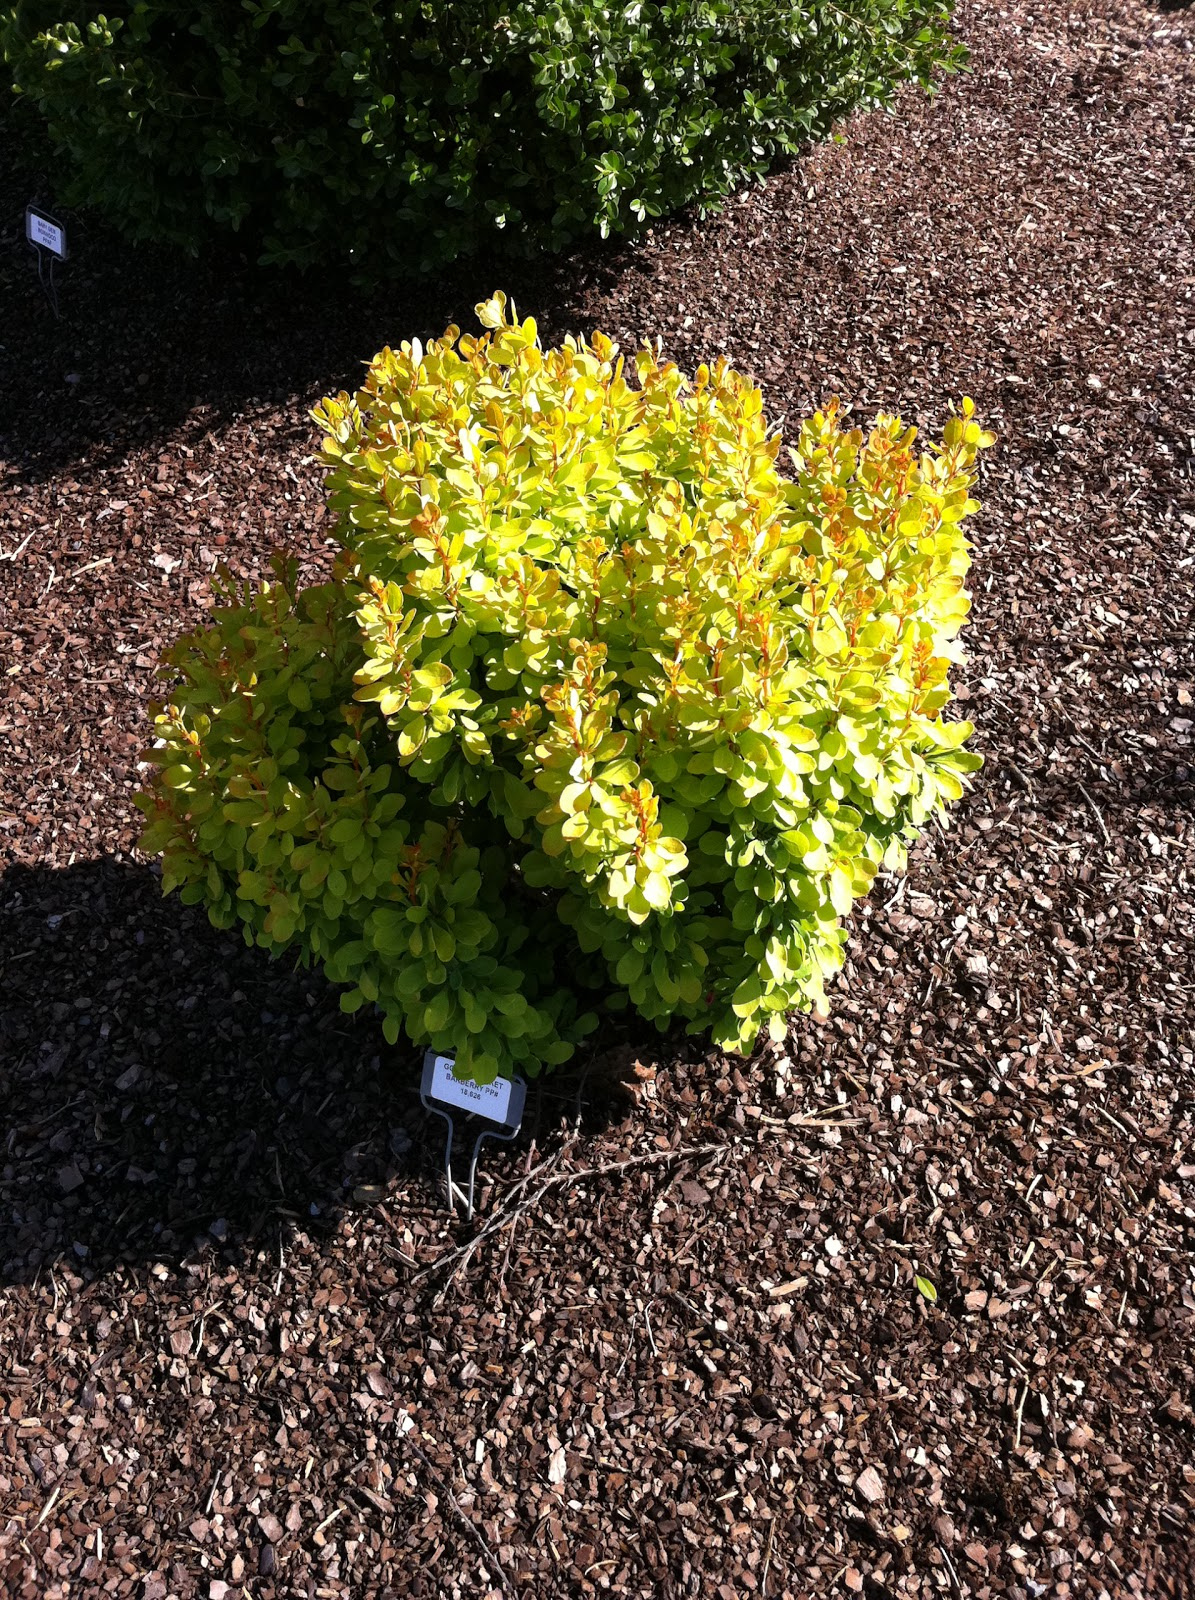 Orange Rocket Barberry in Winter http://plantpreview.blogspot.com/2011/06/patented-tiny-gold-barberry-grows-knee.html